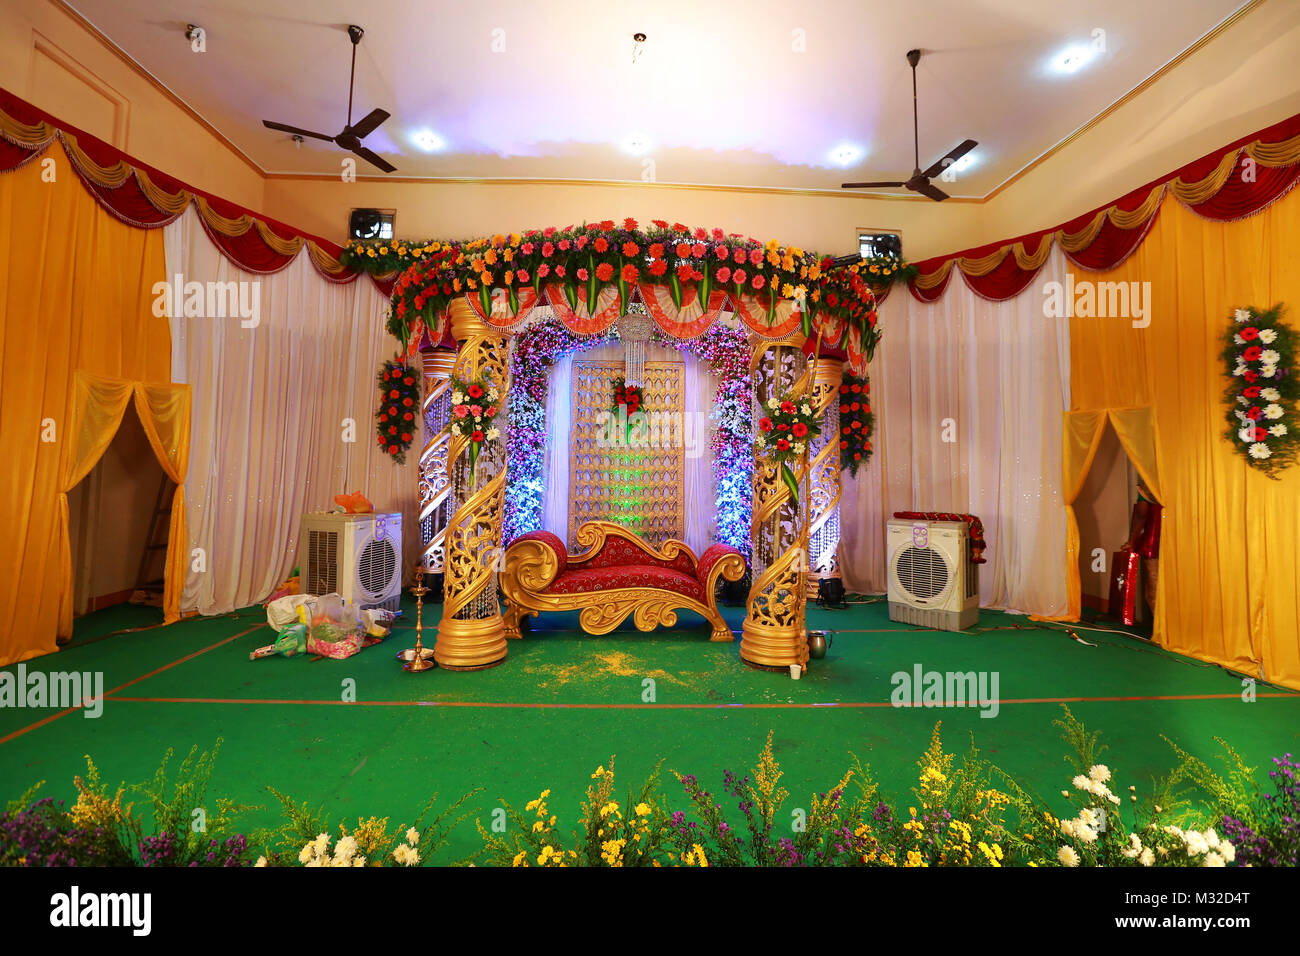 Stage Decoration Wedding Stage Decoration Background Stock Photo 174001880 Alamy